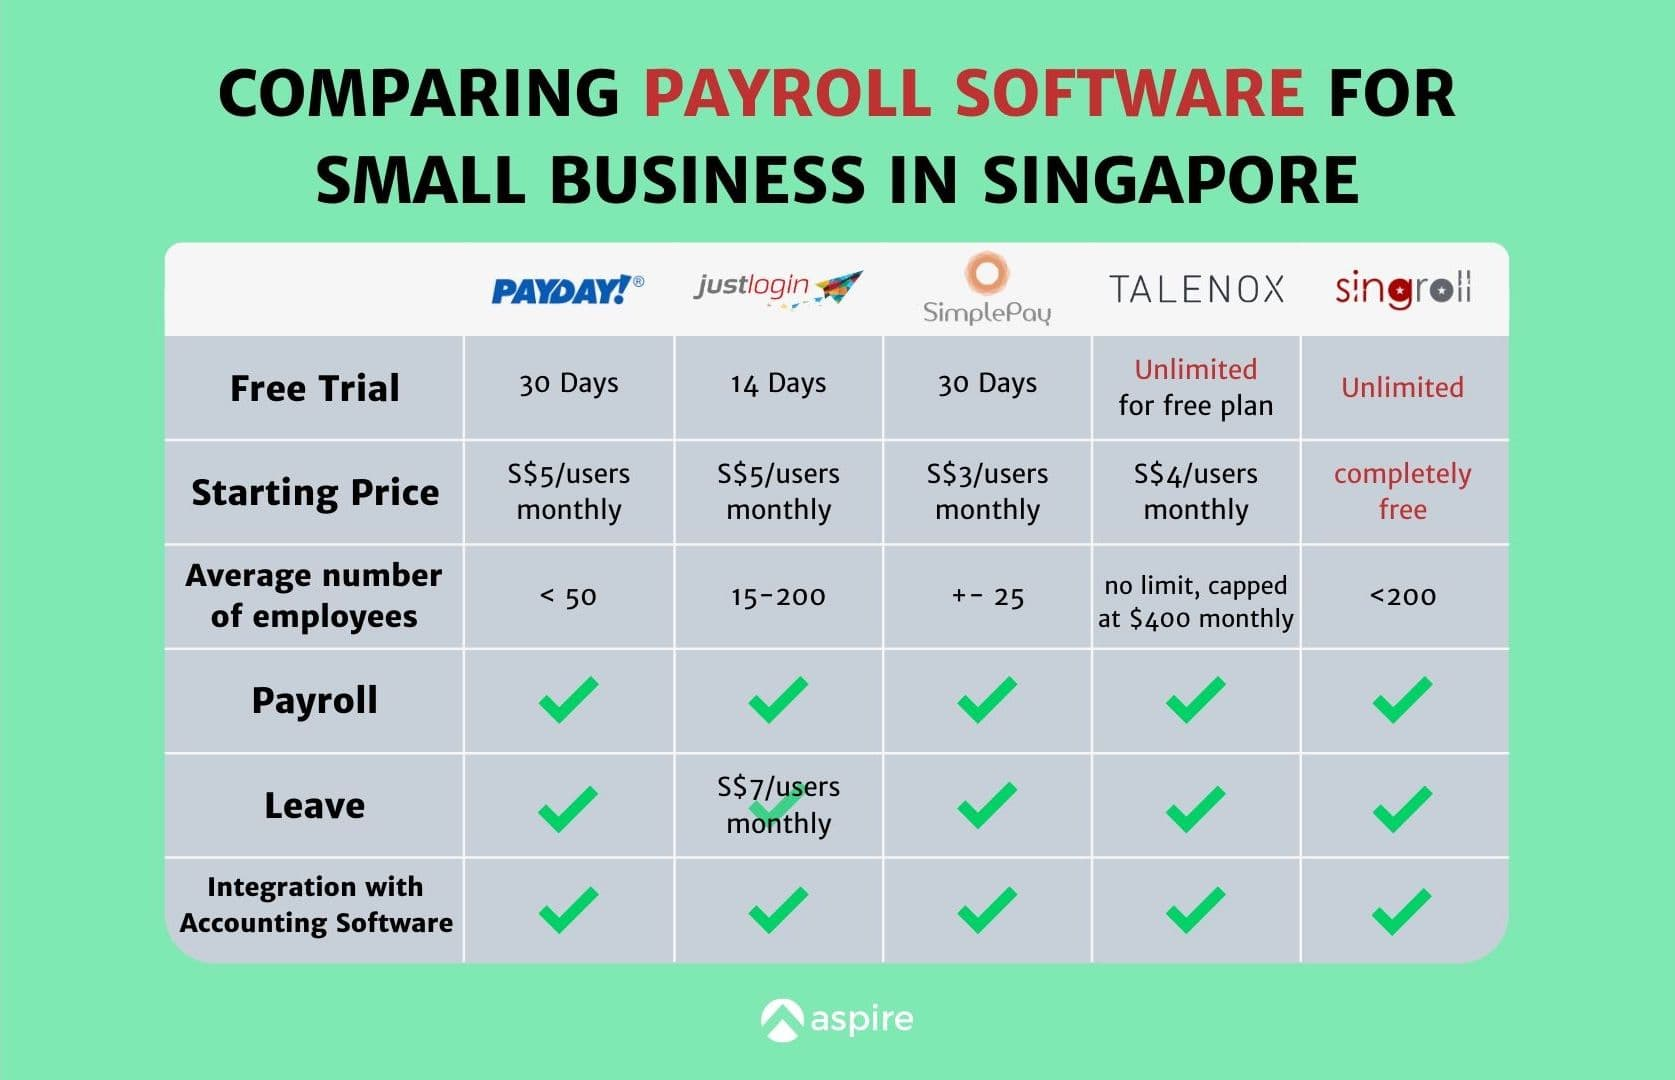 Free Payroll Software for Small Business in Singapore